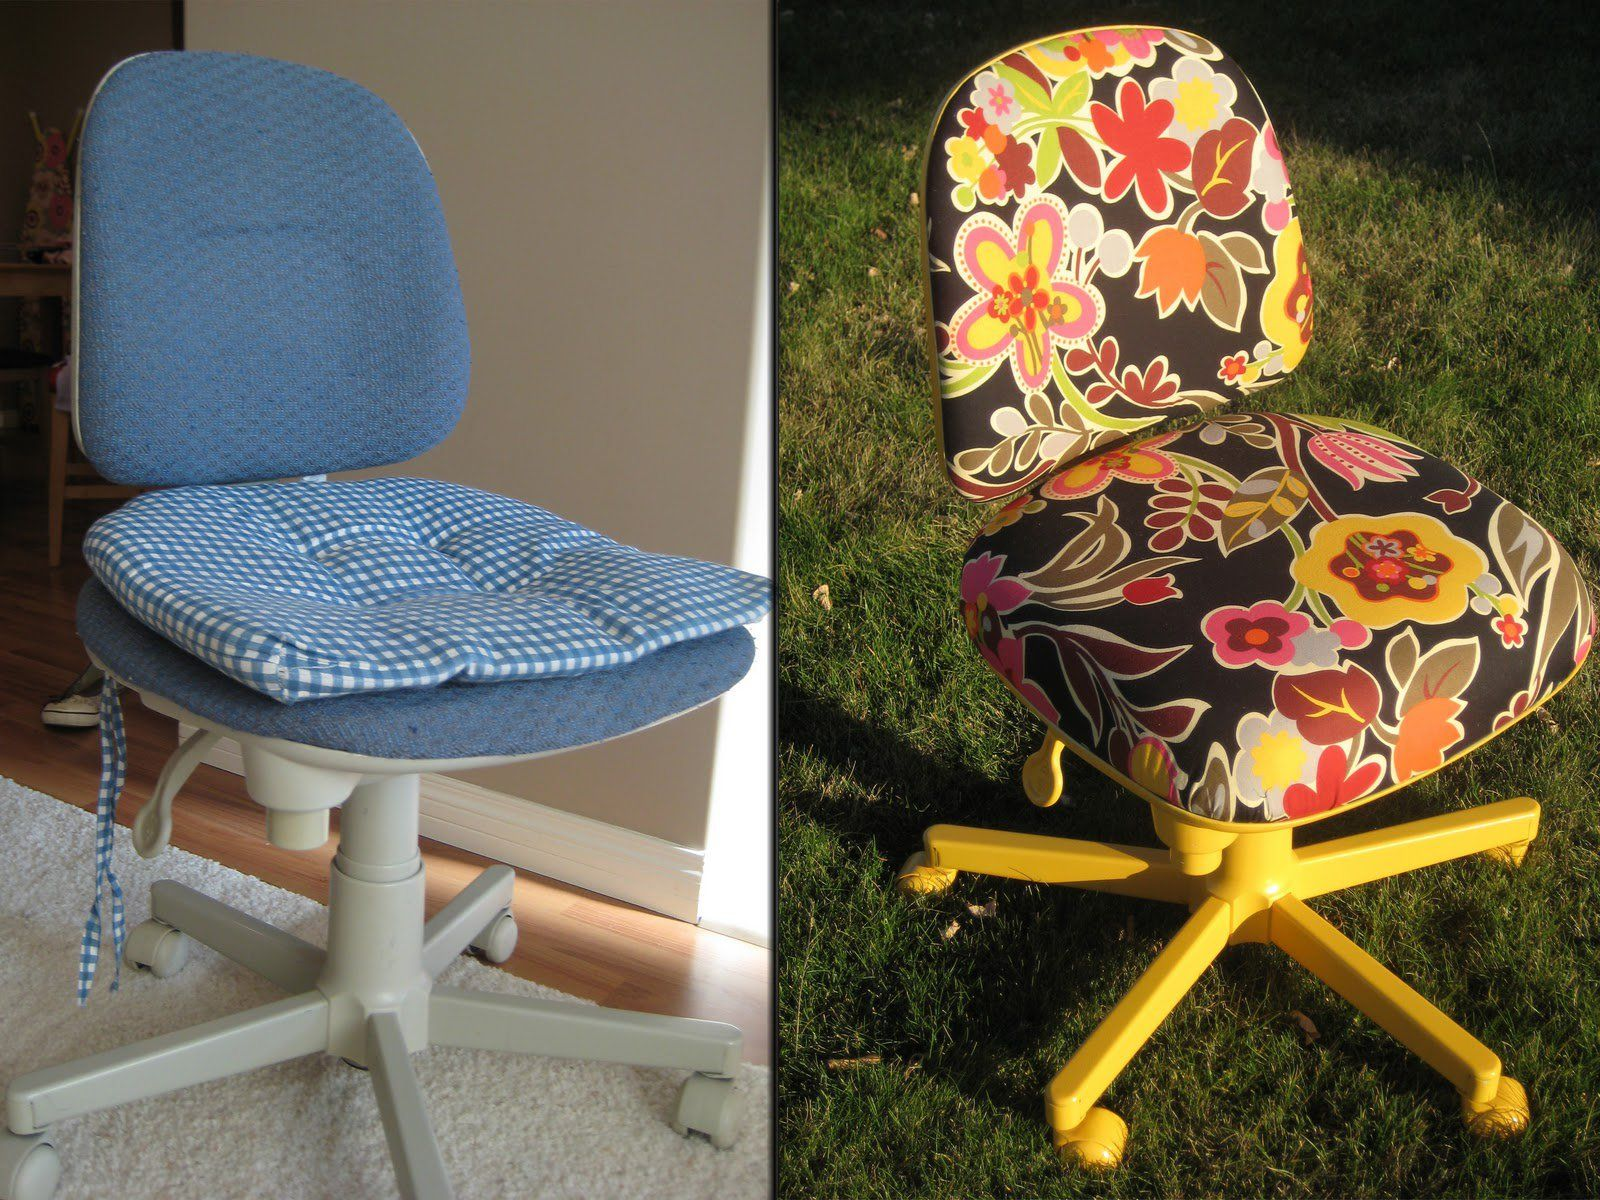 15 Most Amazing Before and After Chair